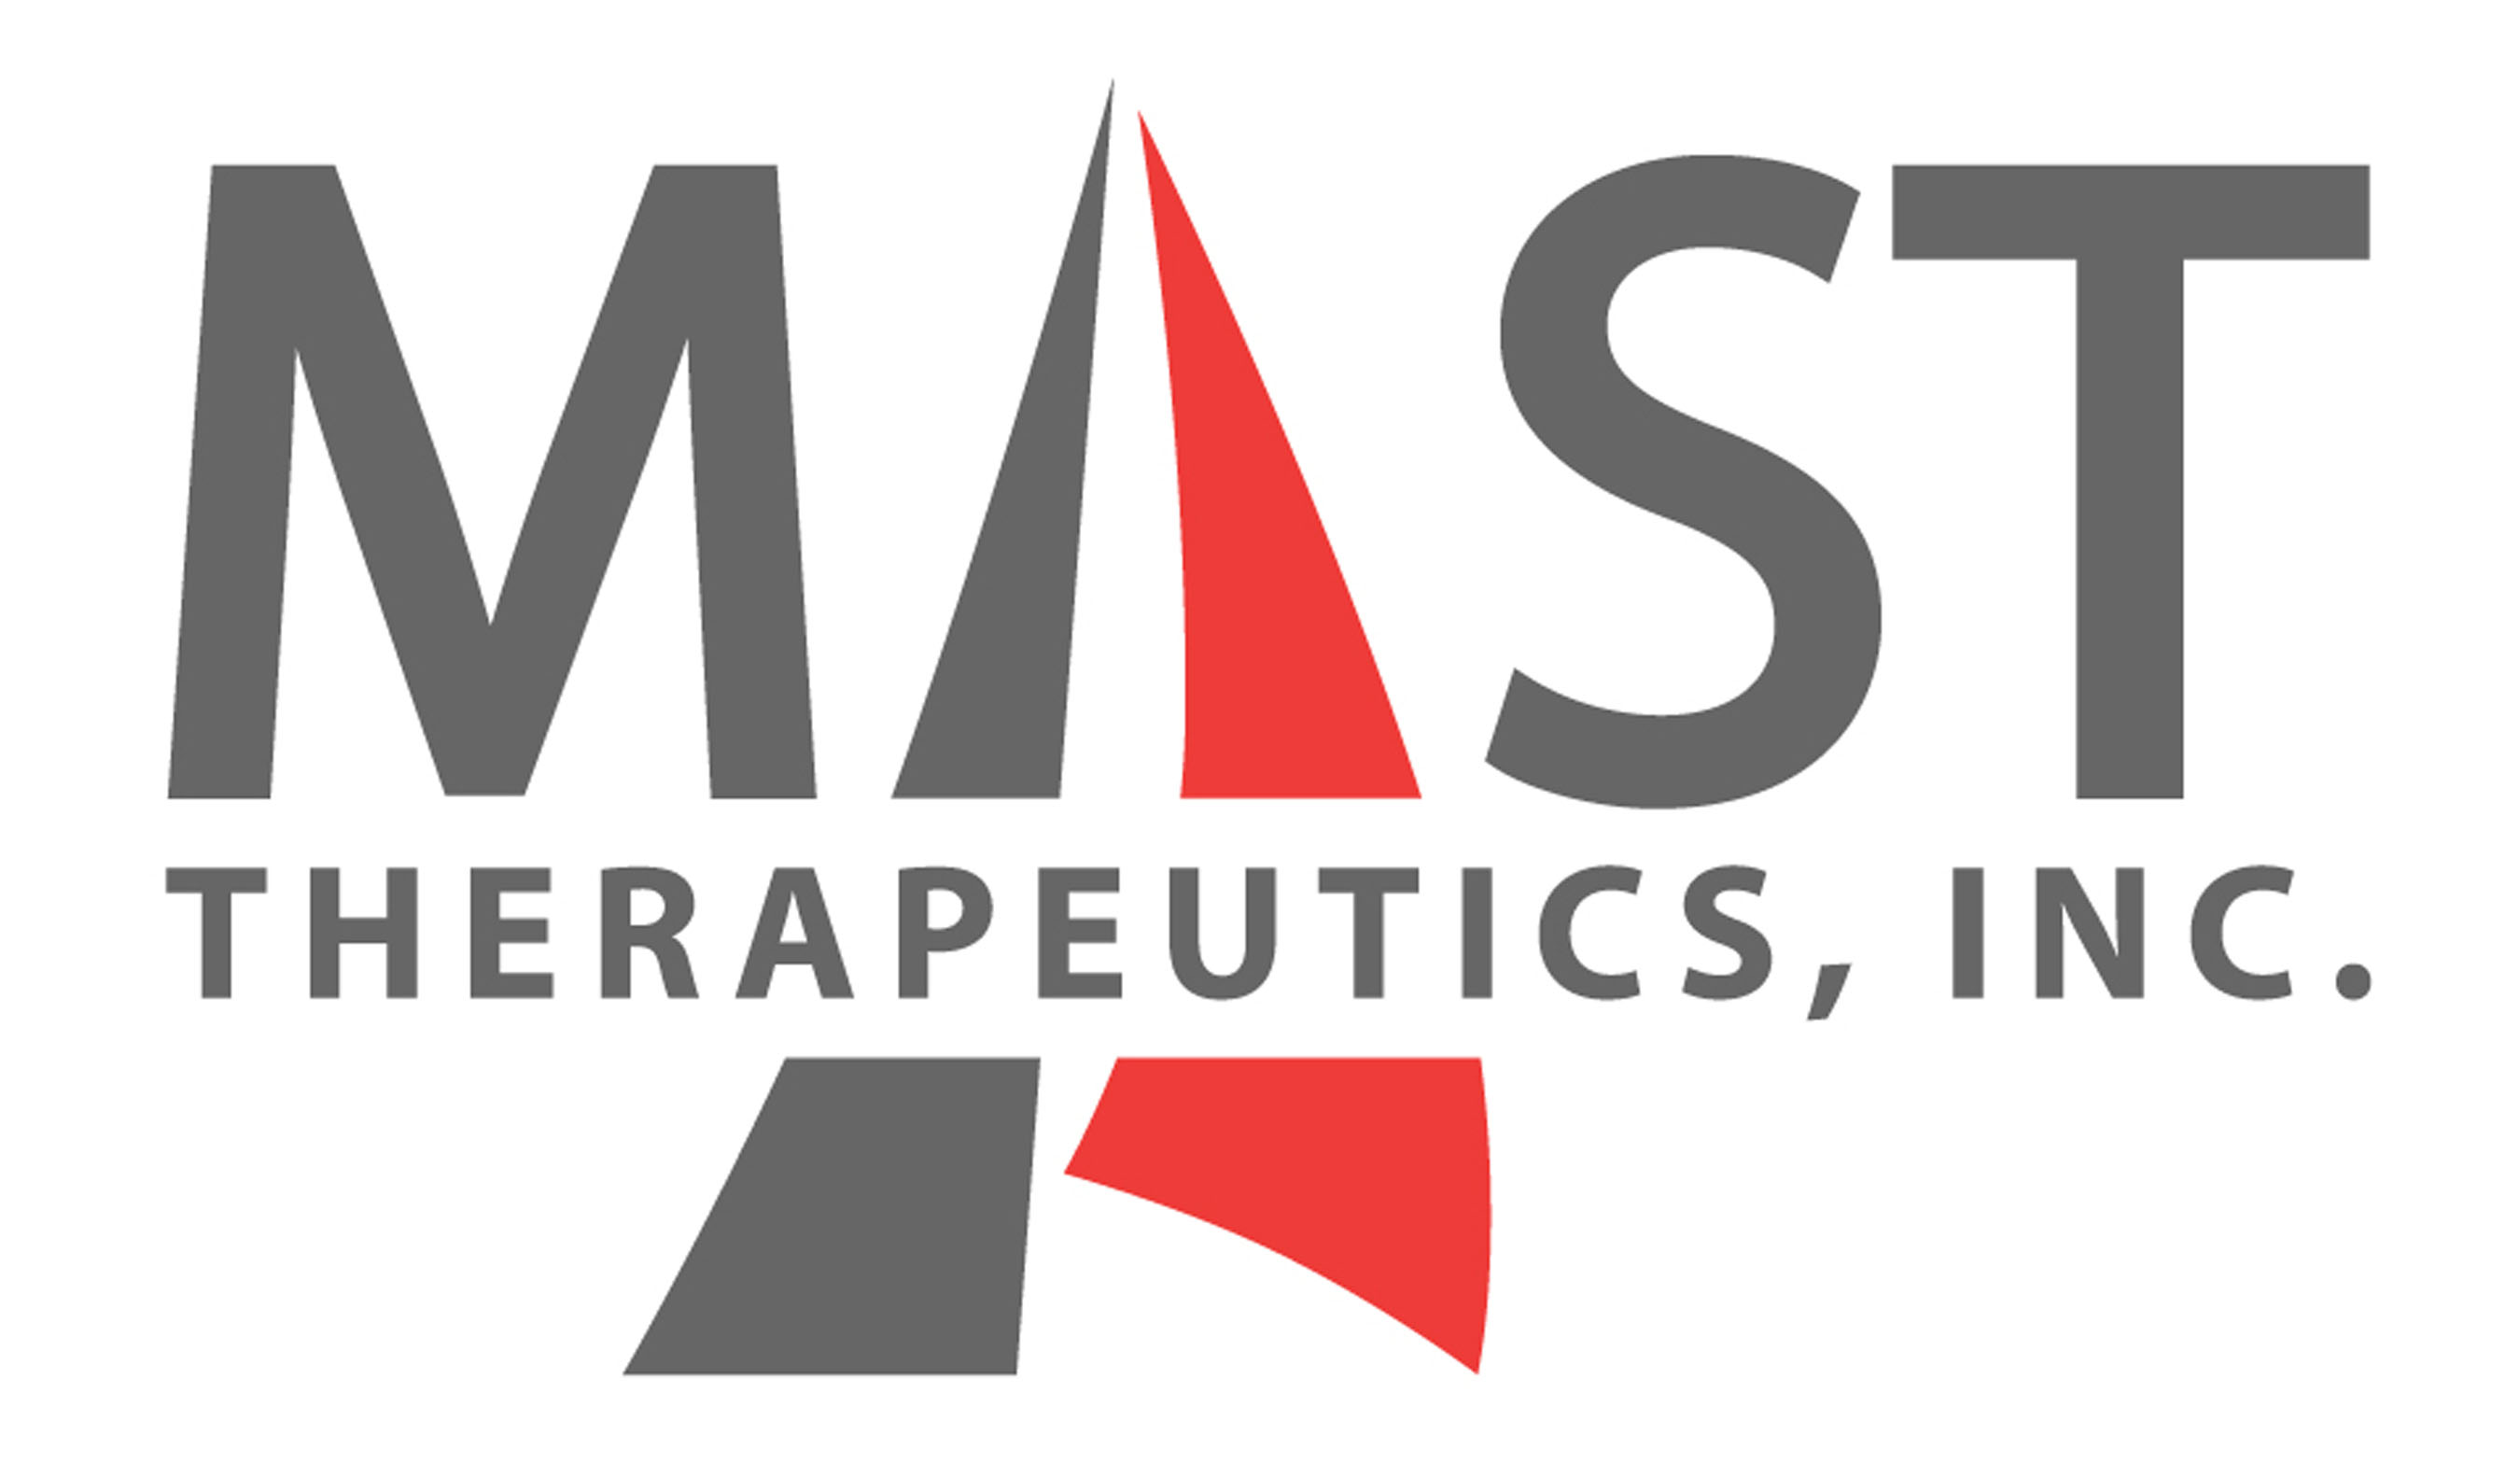 Notable Stock Analysts Ratings: Mast Therapeutics, Inc. (NYSEMKT:MSTX)